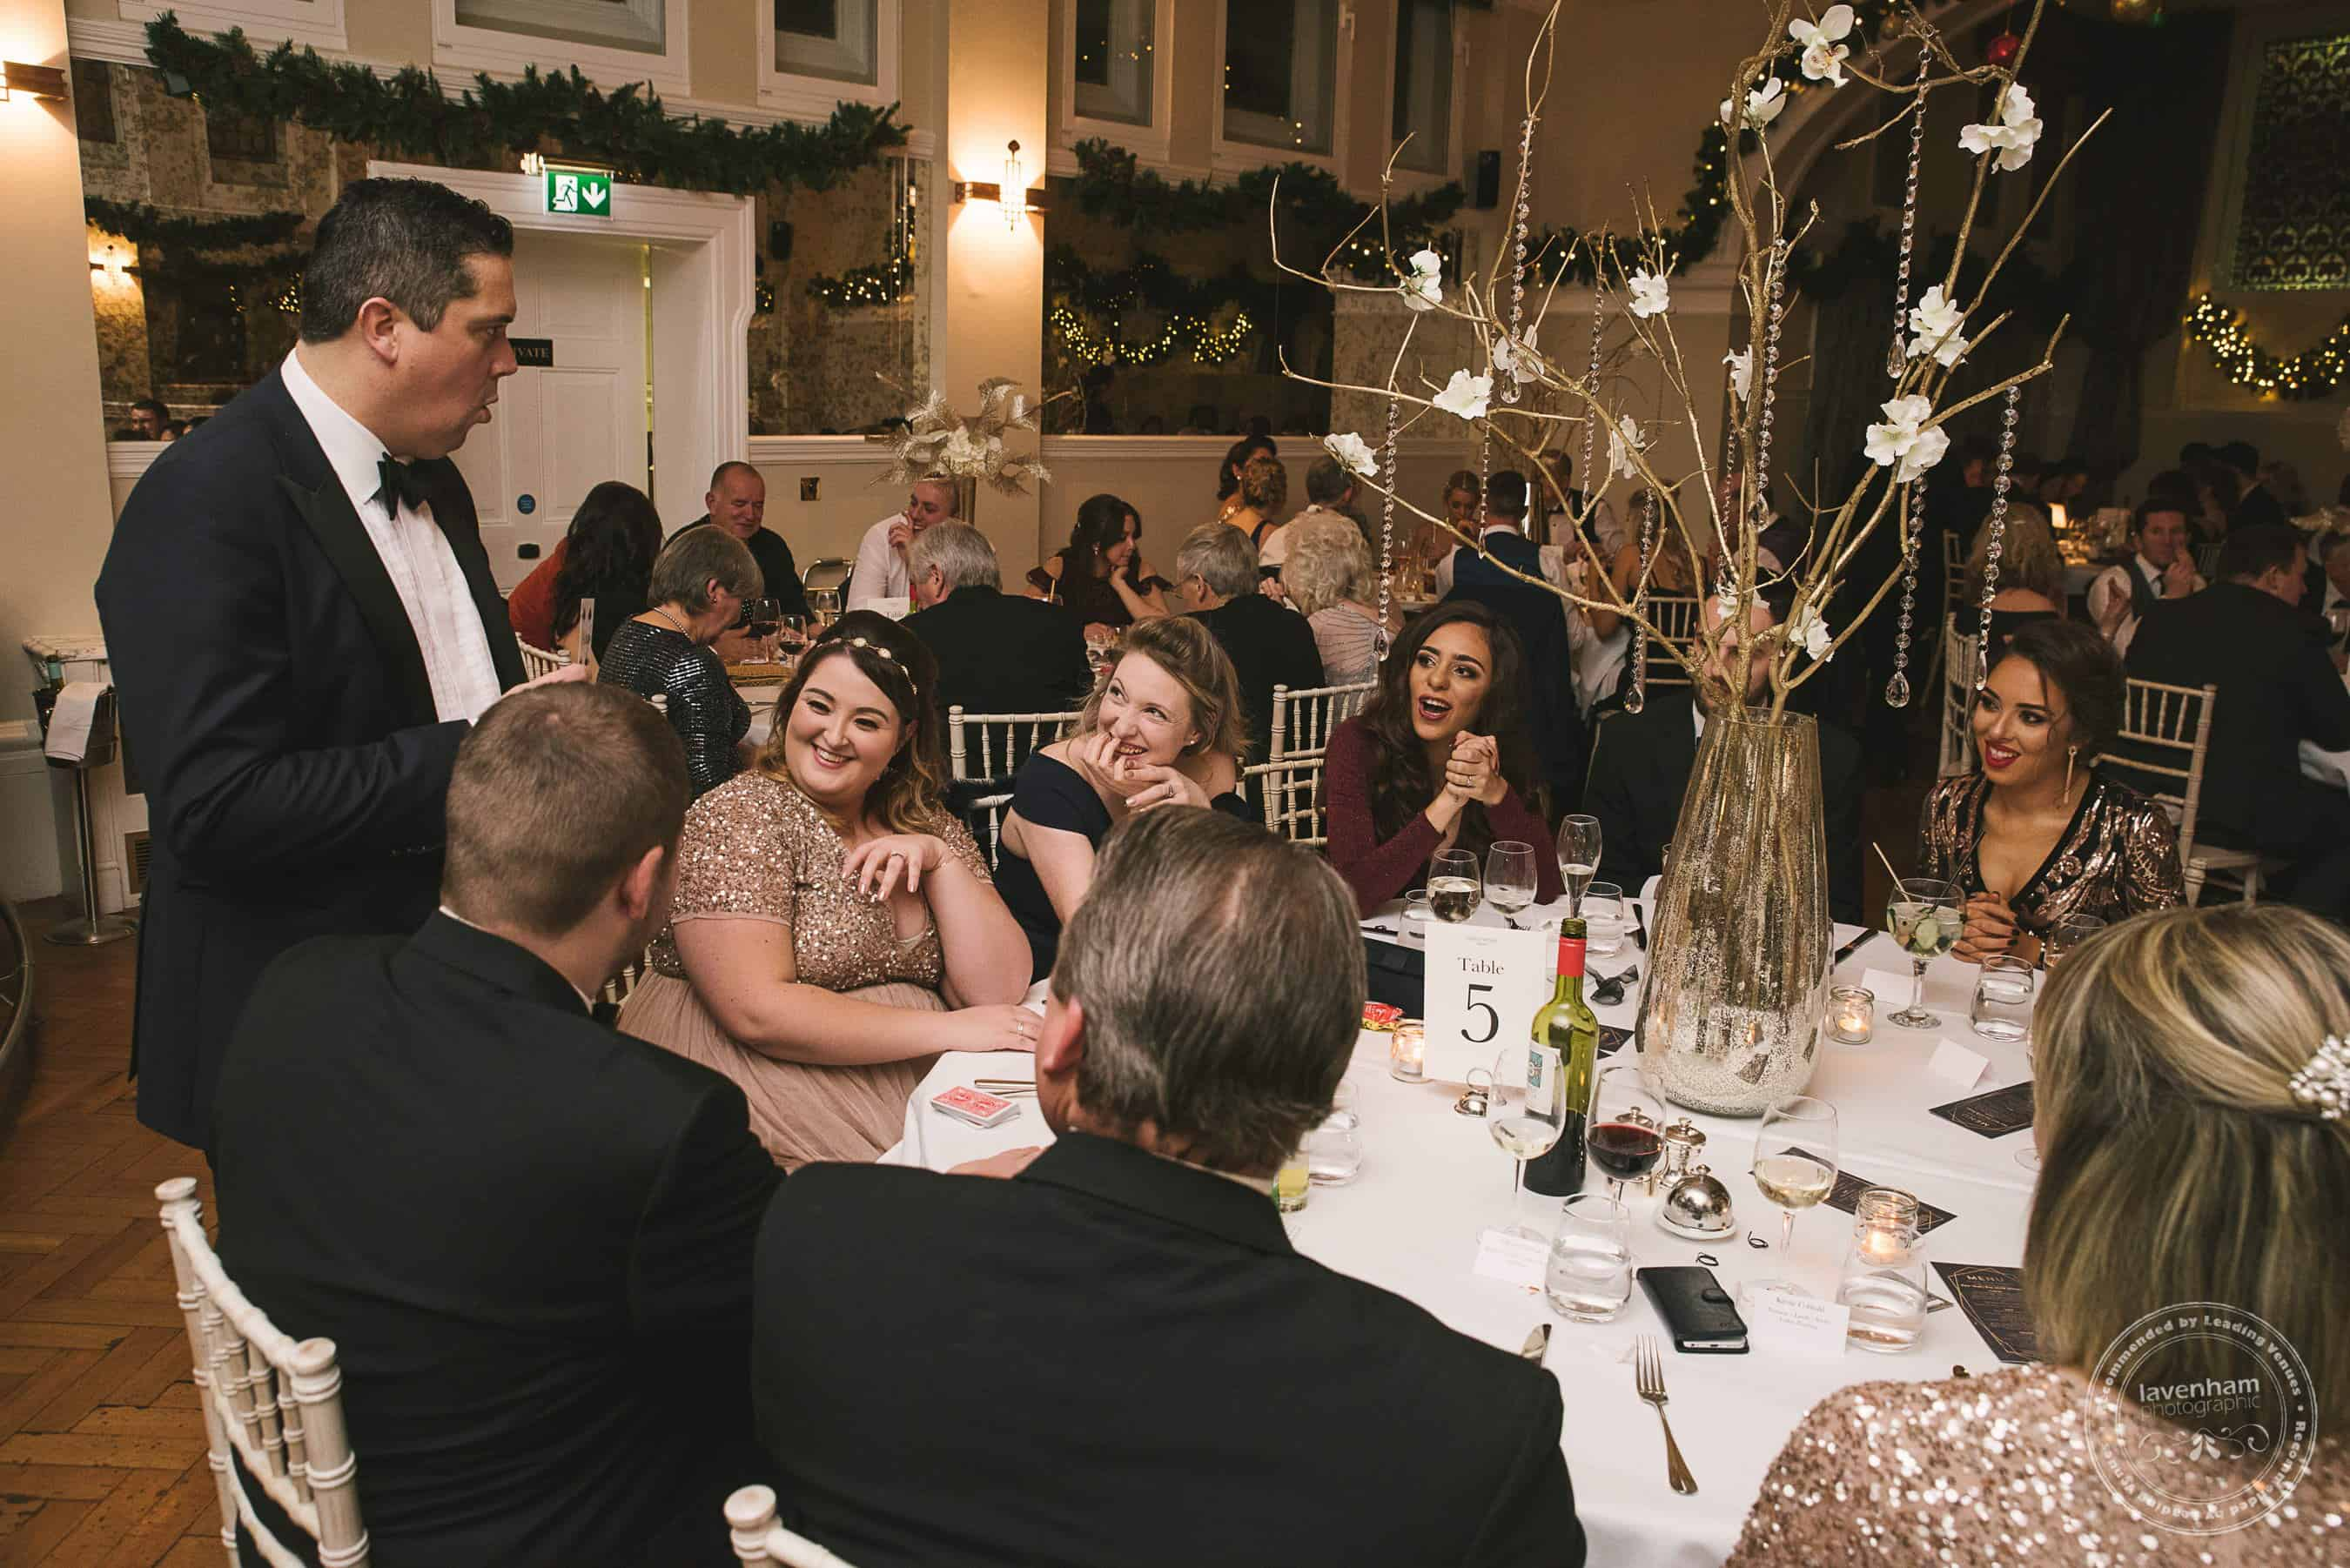 211218 Greyfriars Colchester Wedding Photography Essex Lavenham Photographic 054